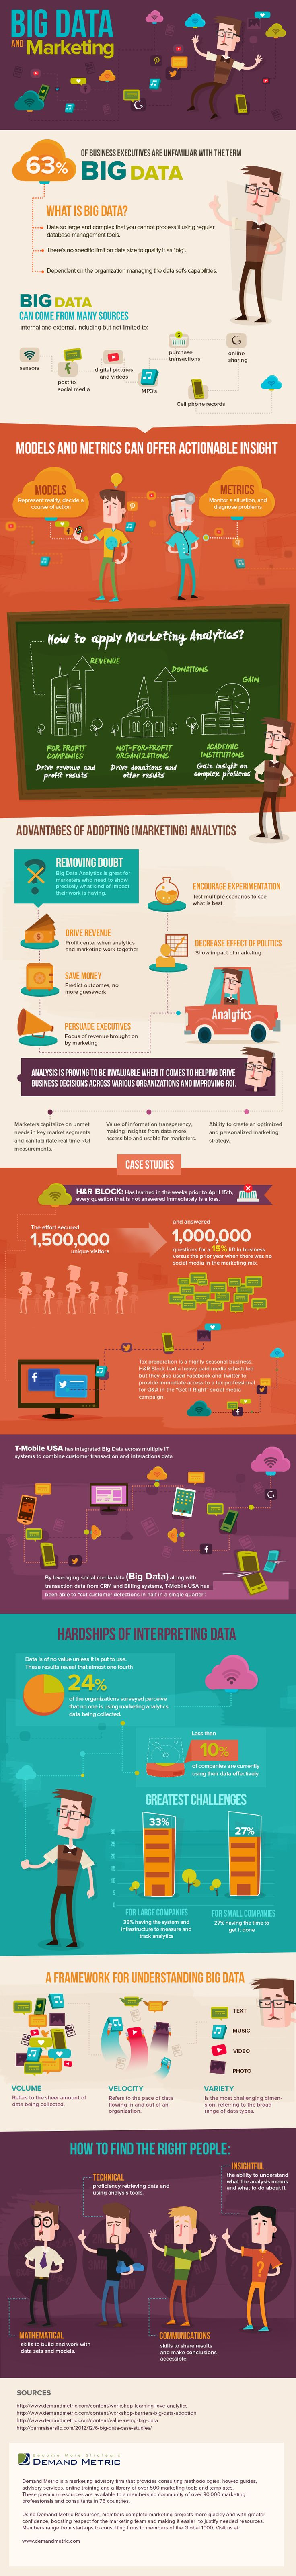 Big Data and Marketing:  Are they related? Yes they are. Numbers tell the tale! So if you want to know whether your actions in marketing are successful, you have to analyze the numbers. View above #infographic    #bigdata #marketing  @kirstytx